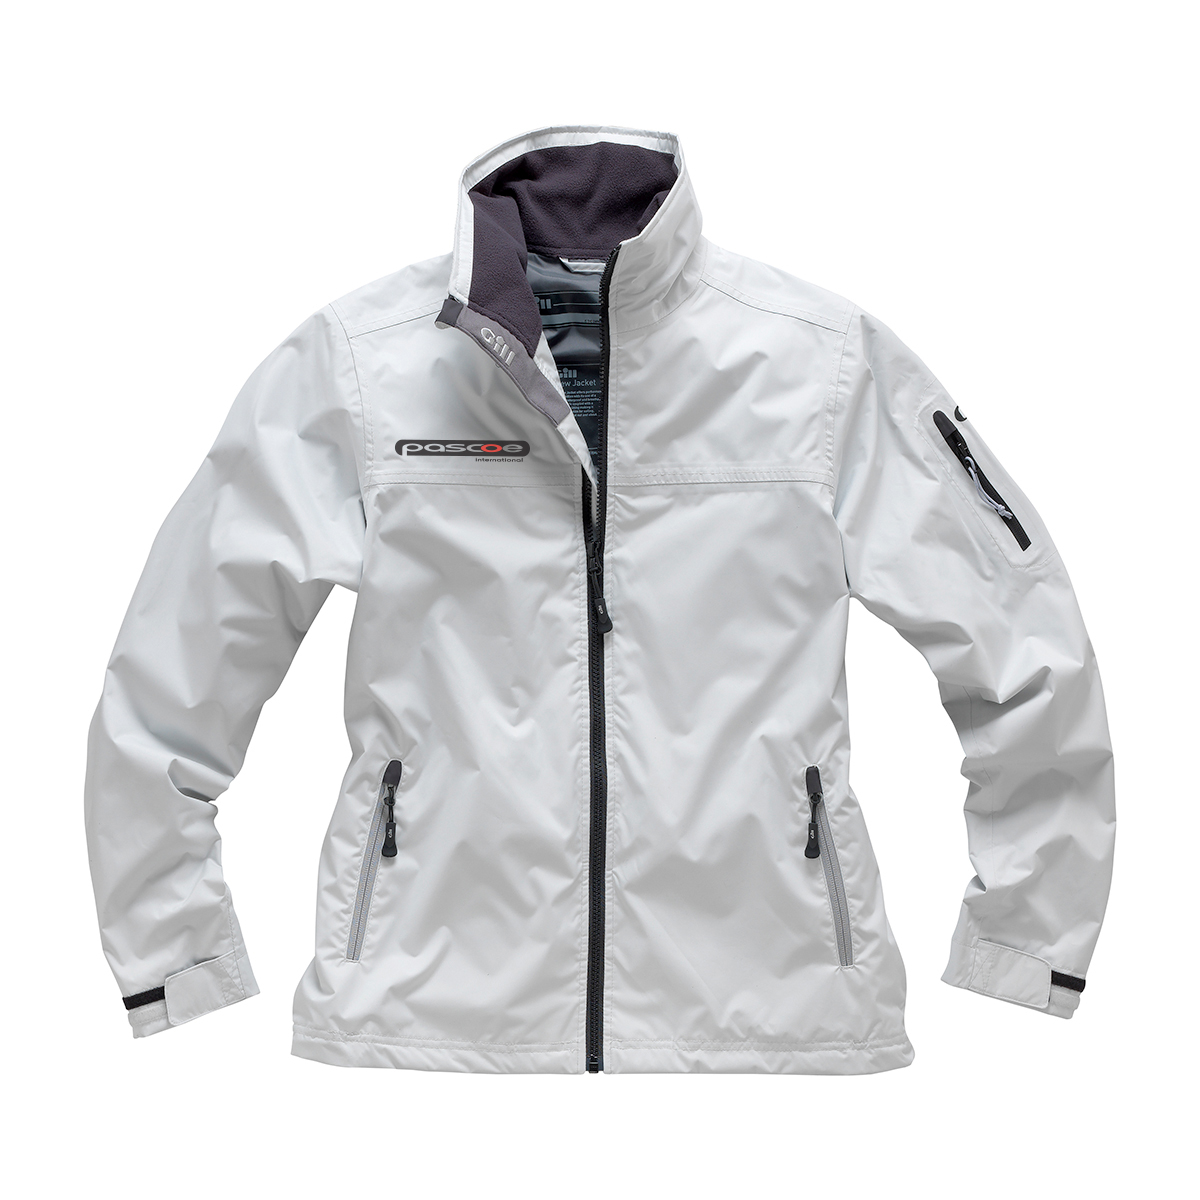 Gill Women's Crew Jacket - This waterproof, breathable Crew Jacket is perfectly constructed with all the technical trimmings, while maintaining its casual, everyday appeal. Every design element aids comfort and convenience, from the warm anti-pill fleece lining, multiple zipped pockets including an internal one at the chest, to the drawcords that adjust the fit at the hem and cuffs.£119.00